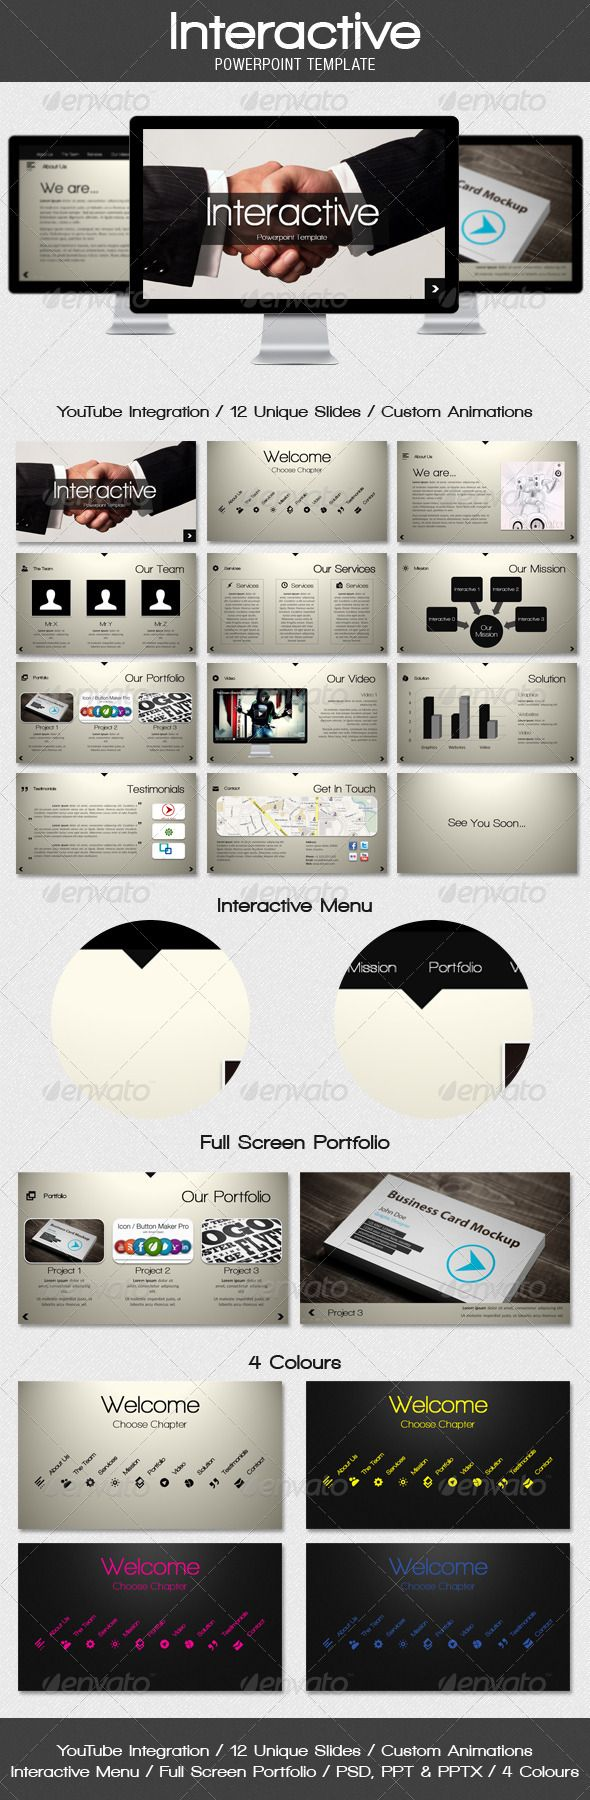 Best Images About Graphika Powerpoint On   Behance